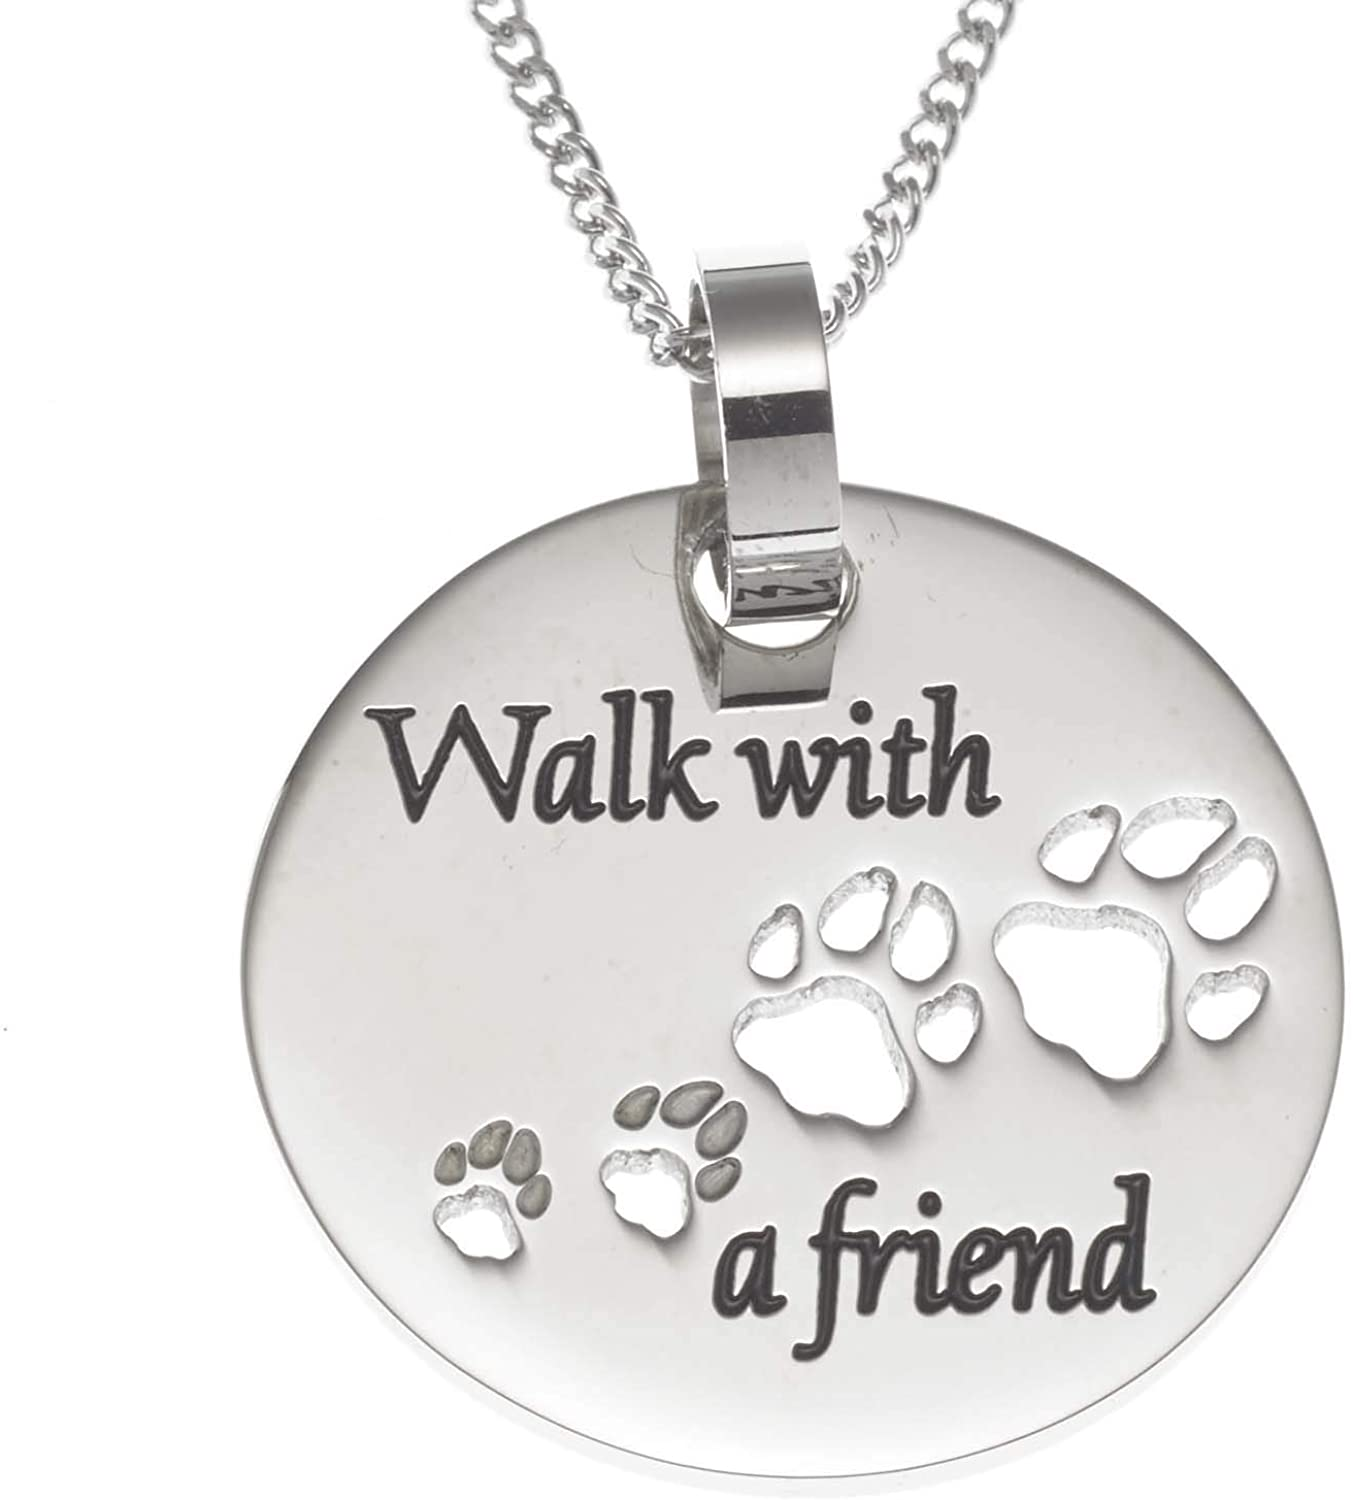 Joyful Sentiments Pet Jewelry Stainless Steel Walk with A Friend Paw Print Pendant With 18 Necklace And 3 Extender